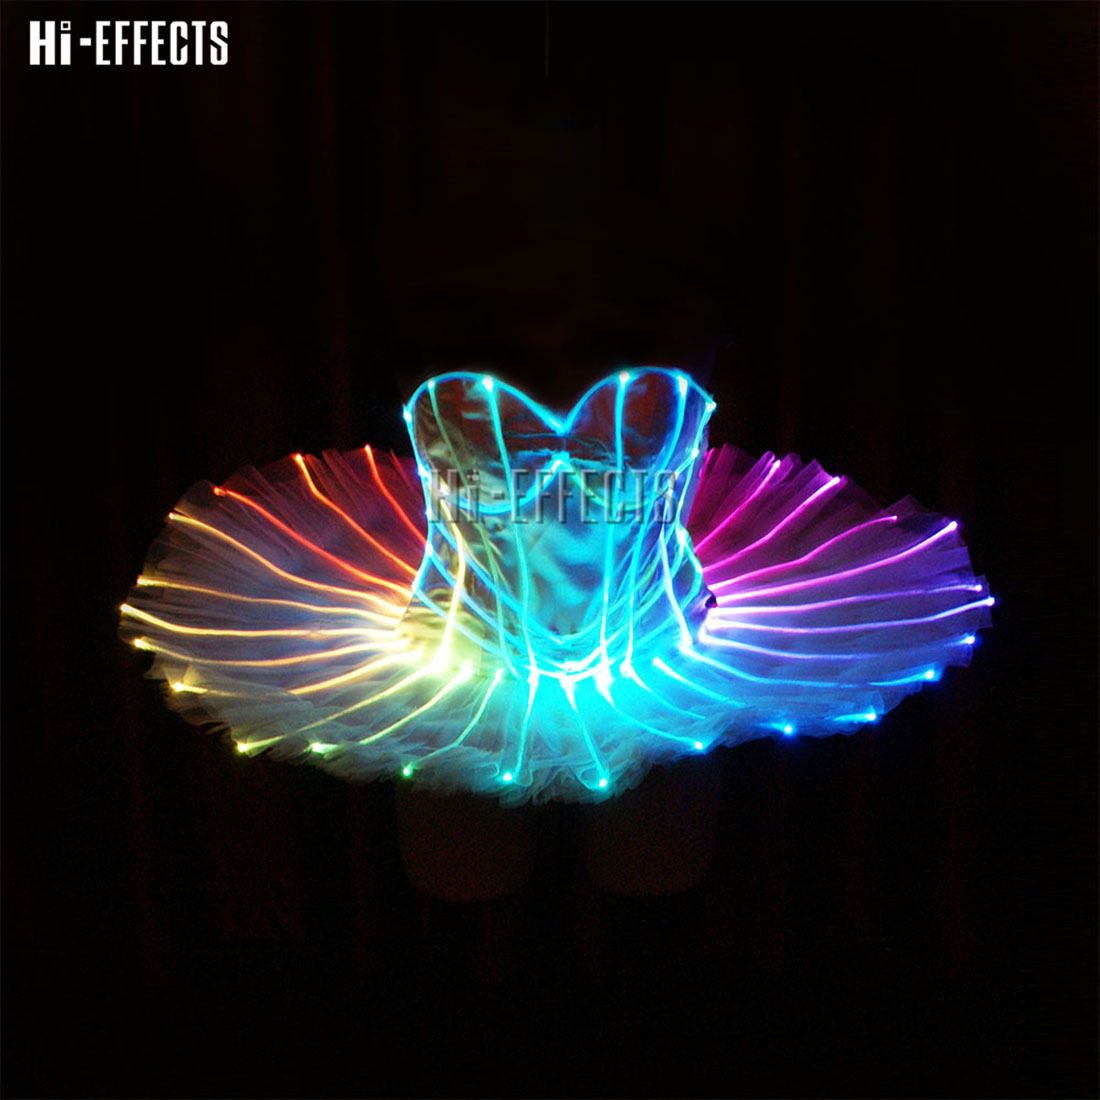 Female LED Luminous Party Dress Led Nightclub Sexy Costume Dress For Girls Light Up Remote Control Stage Performance Wear